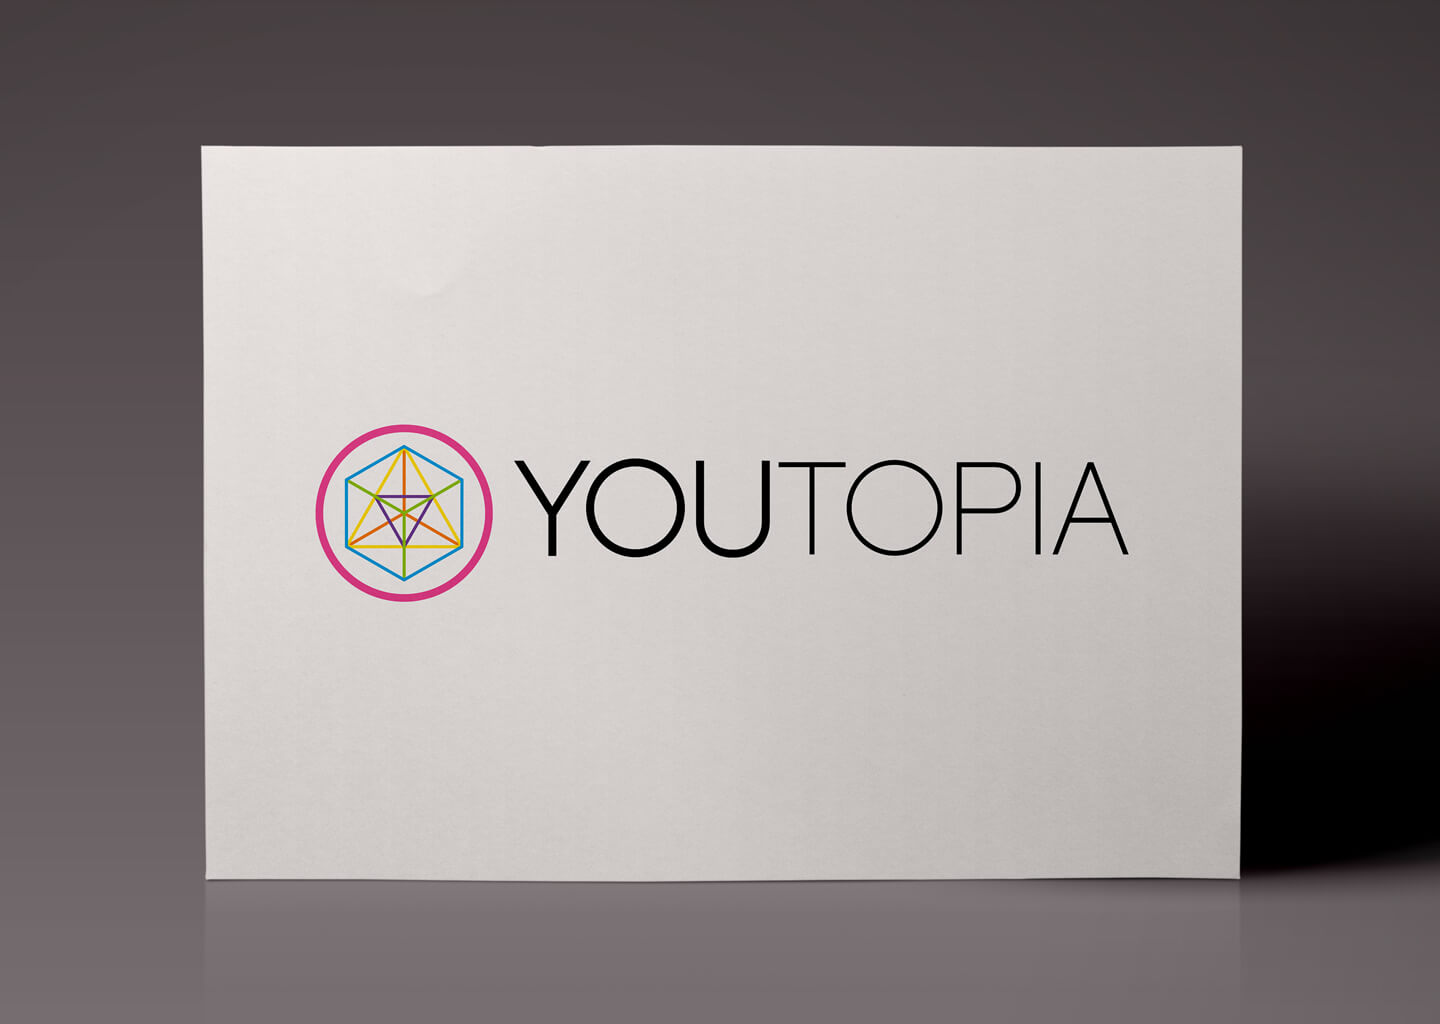 Full colour logo design for Youtopia branding